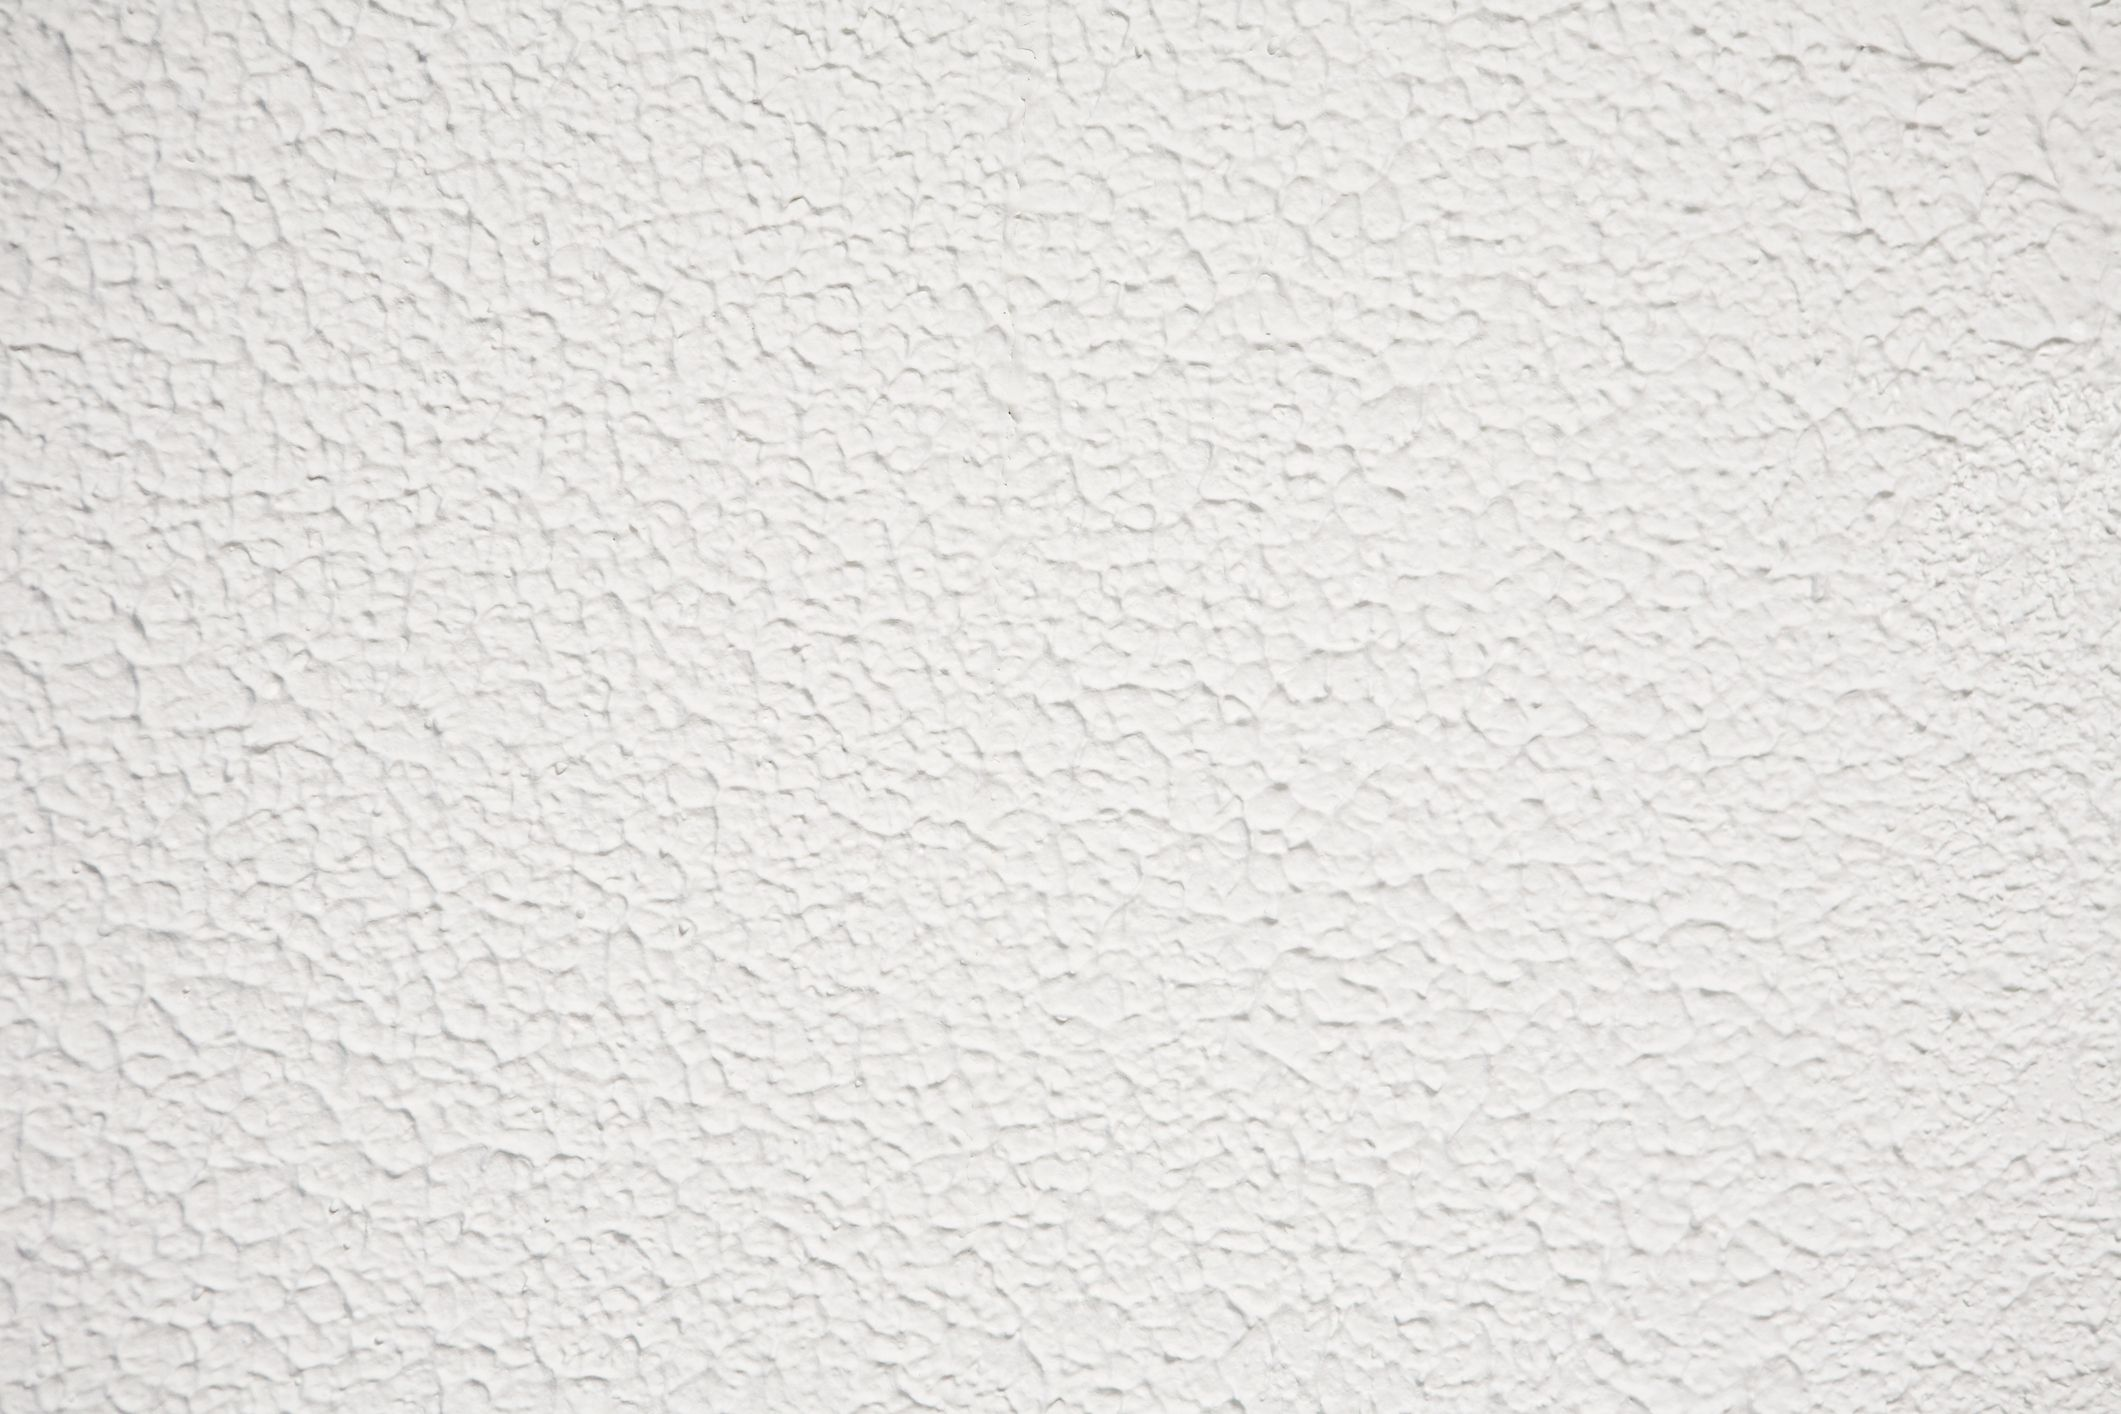 Fall Halloween Wallpaper Hd Options For Covering A Popcorn Ceiling